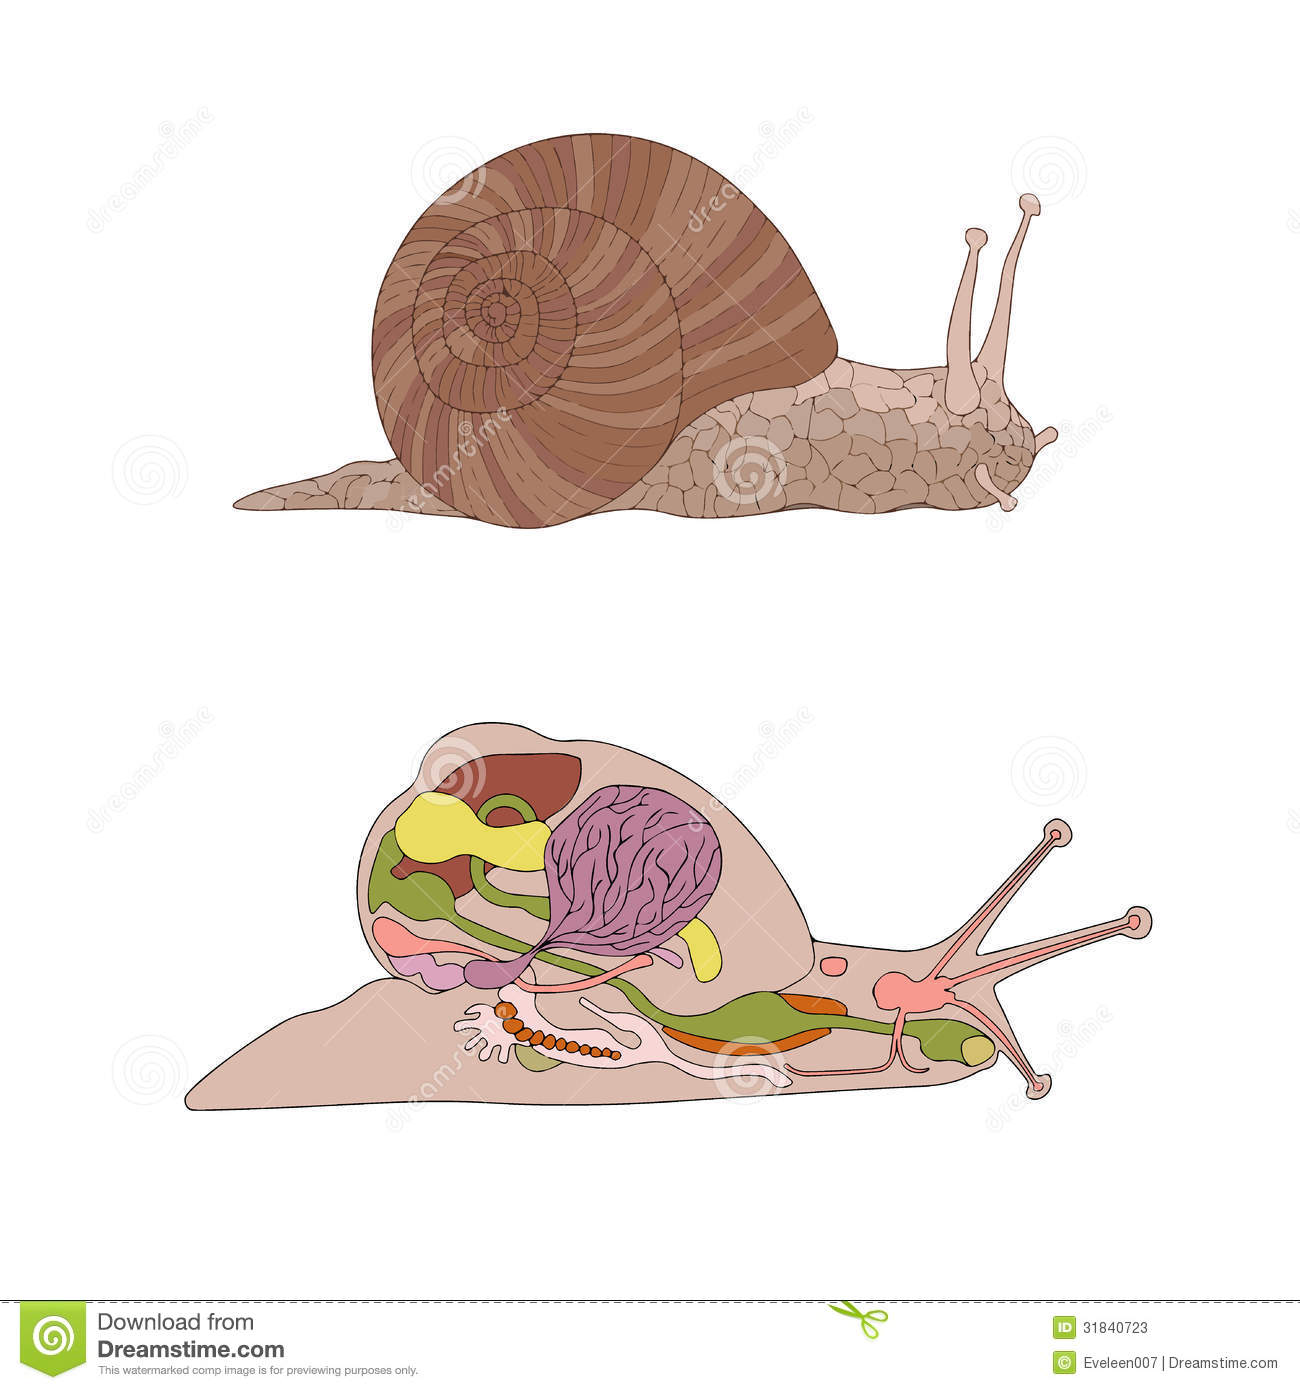 Morphology, Cross-section Of Snail Stock Vector - Illustration of ...